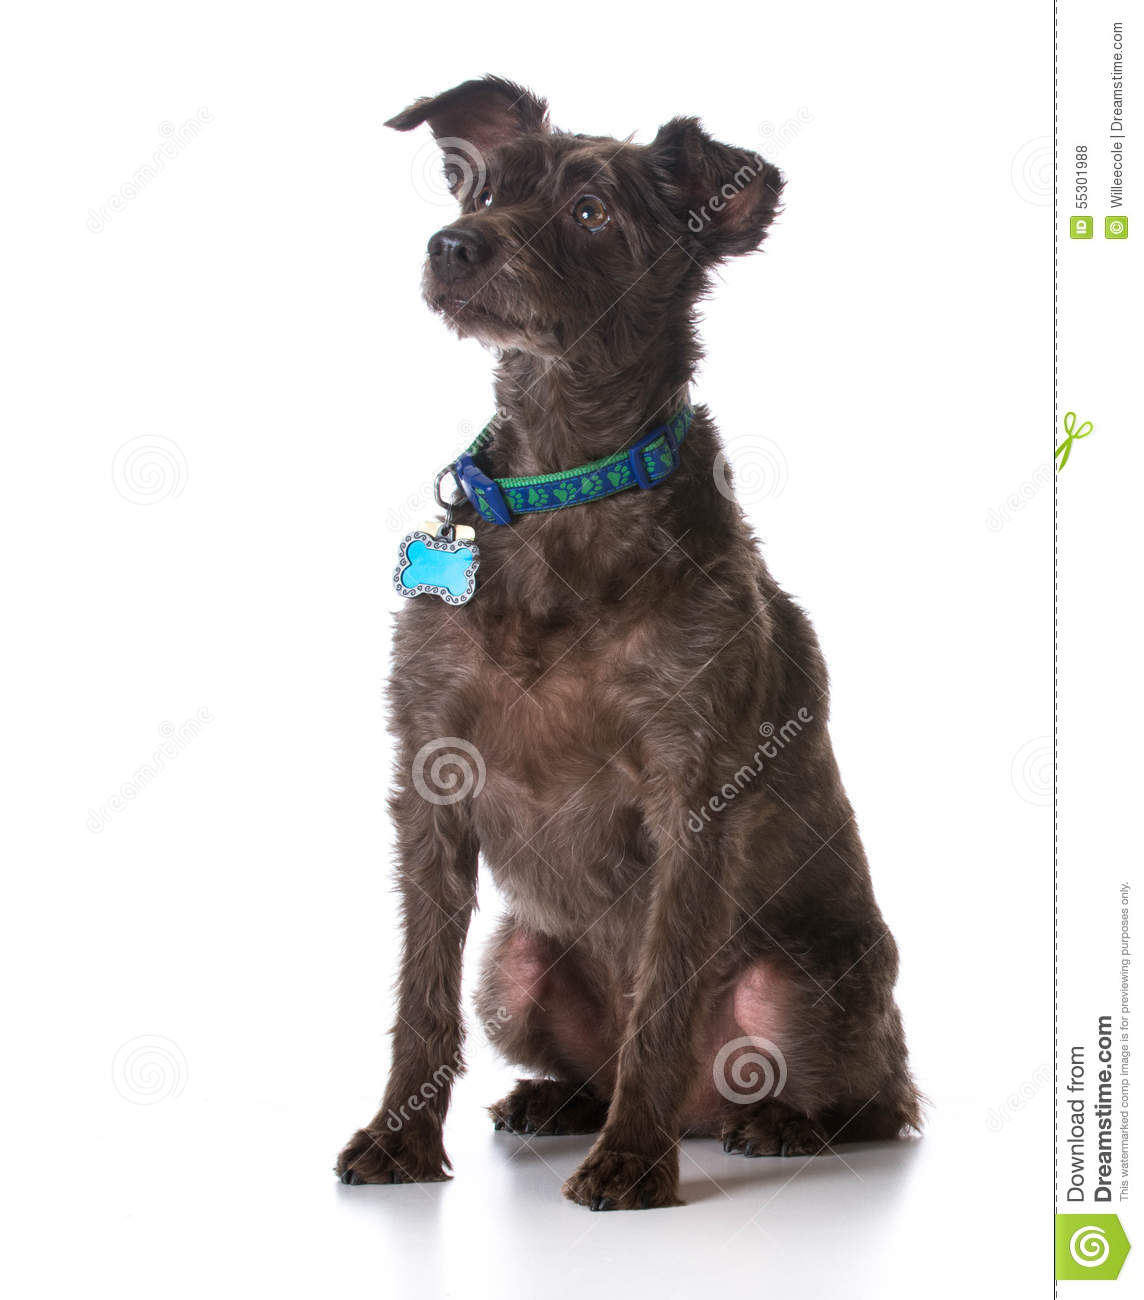 Dog Wearing Collar With Name Tag